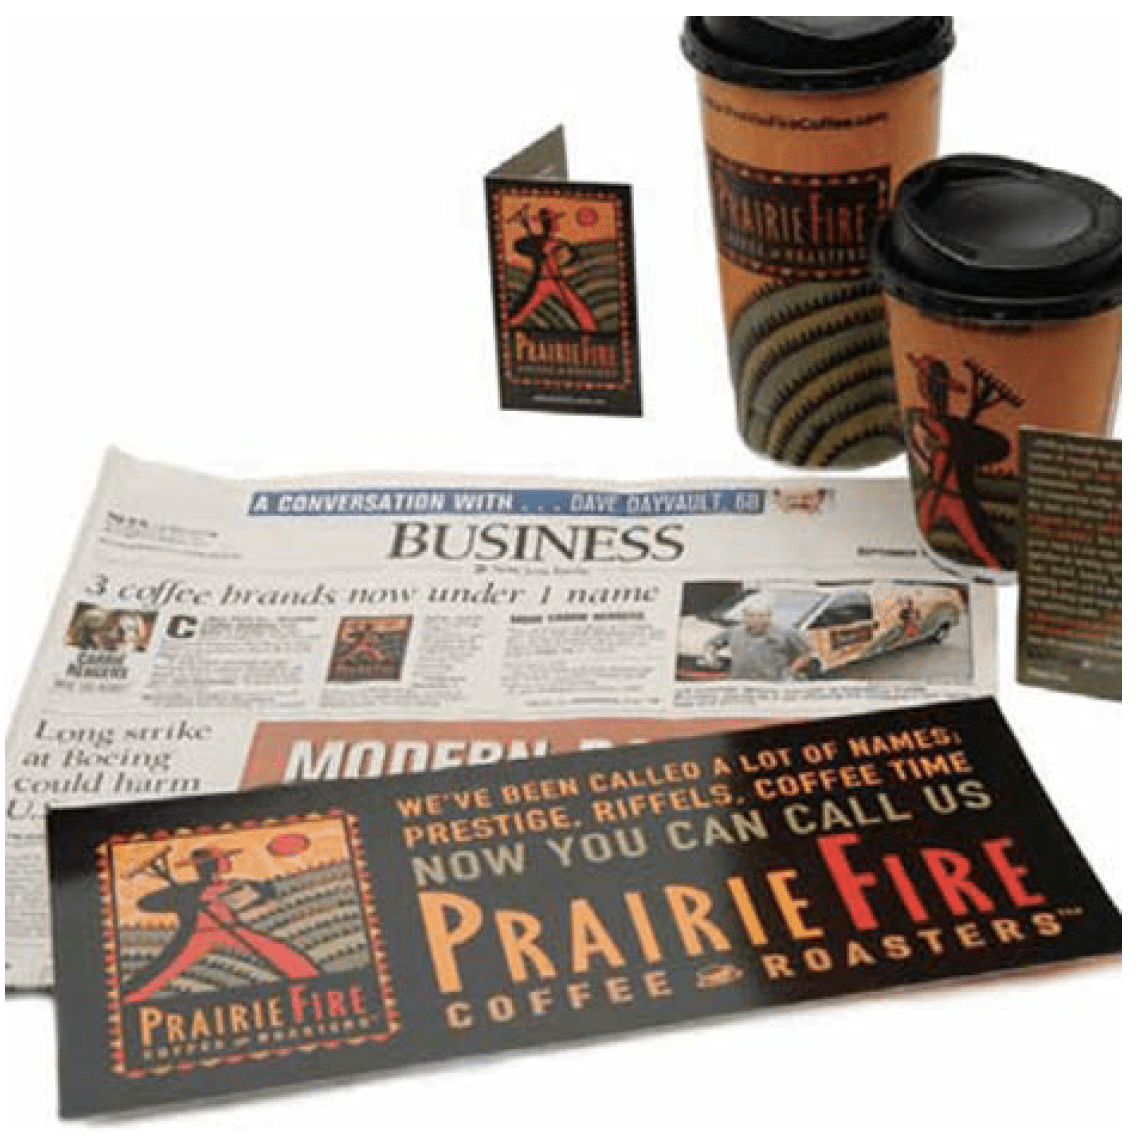 Prairie Fire Coffee Roasters Direct Mail and Packaging